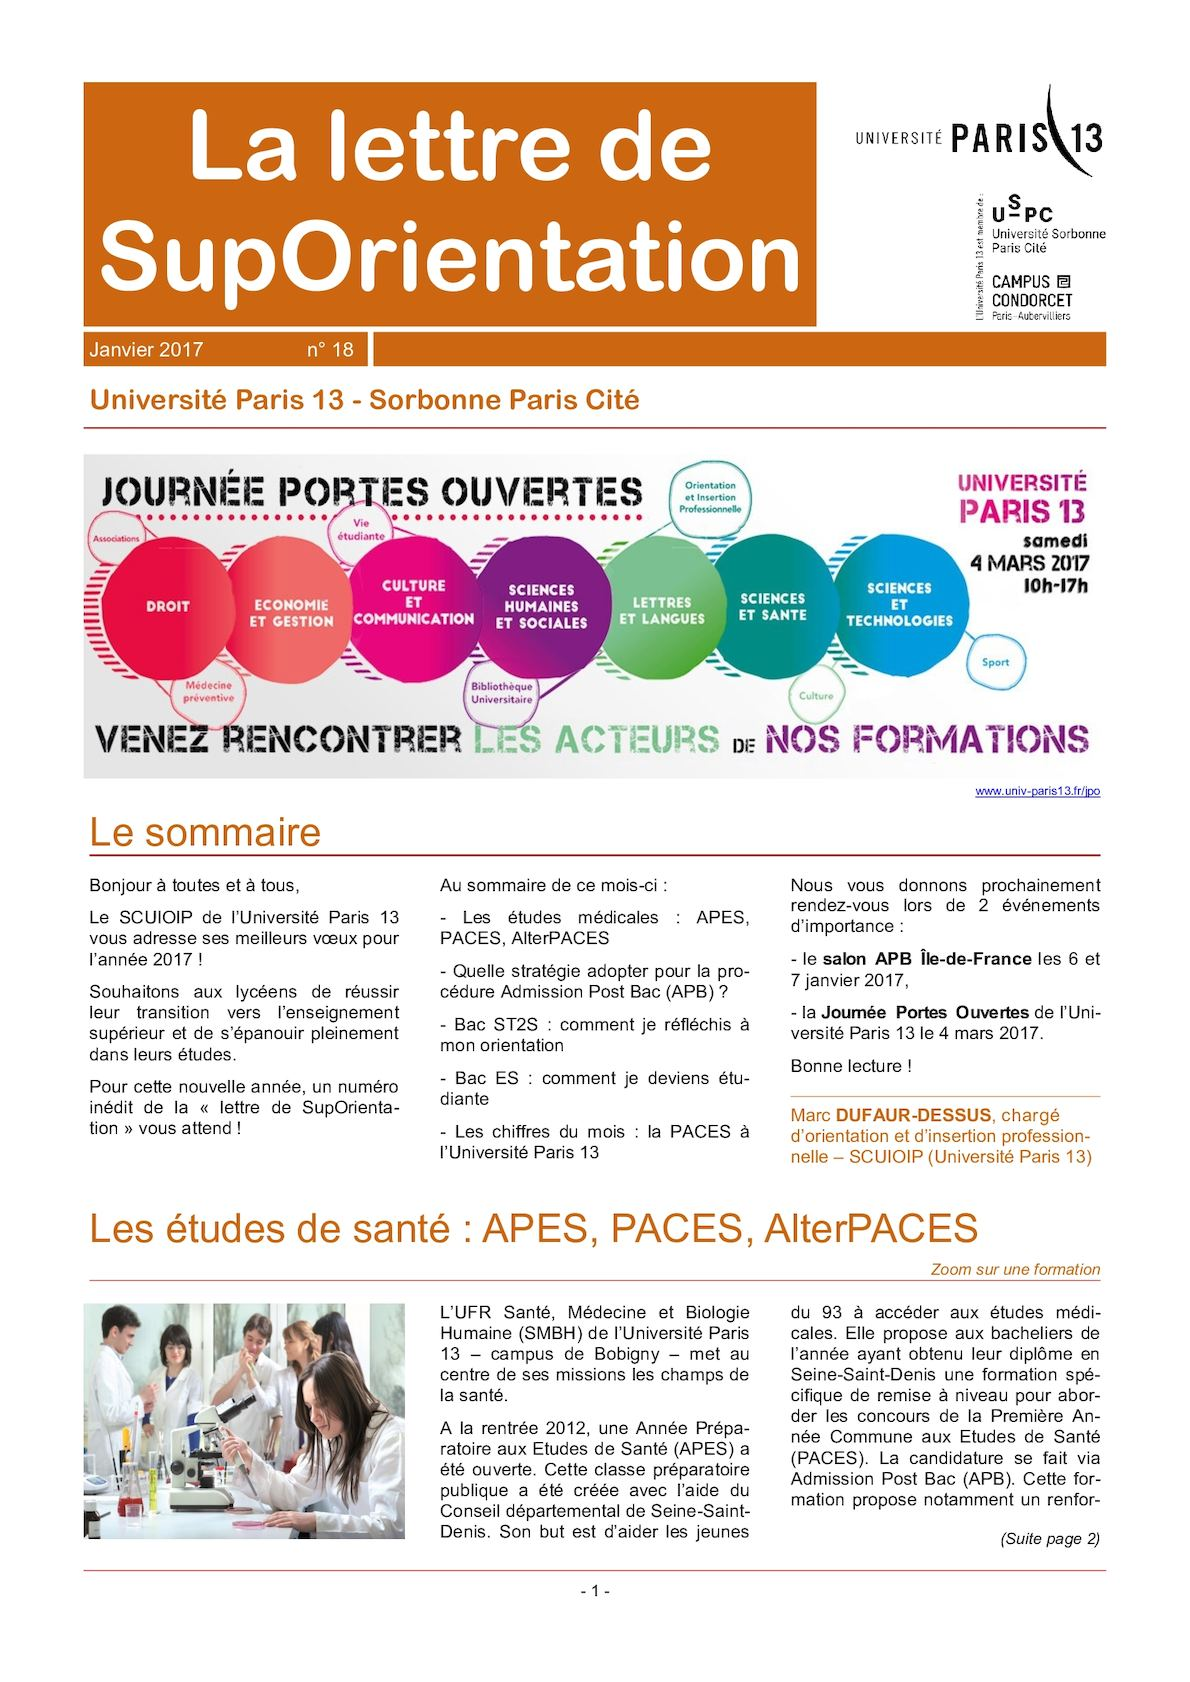 Calam o janvier 2017 la lettre de suporientation for Salon apb paris